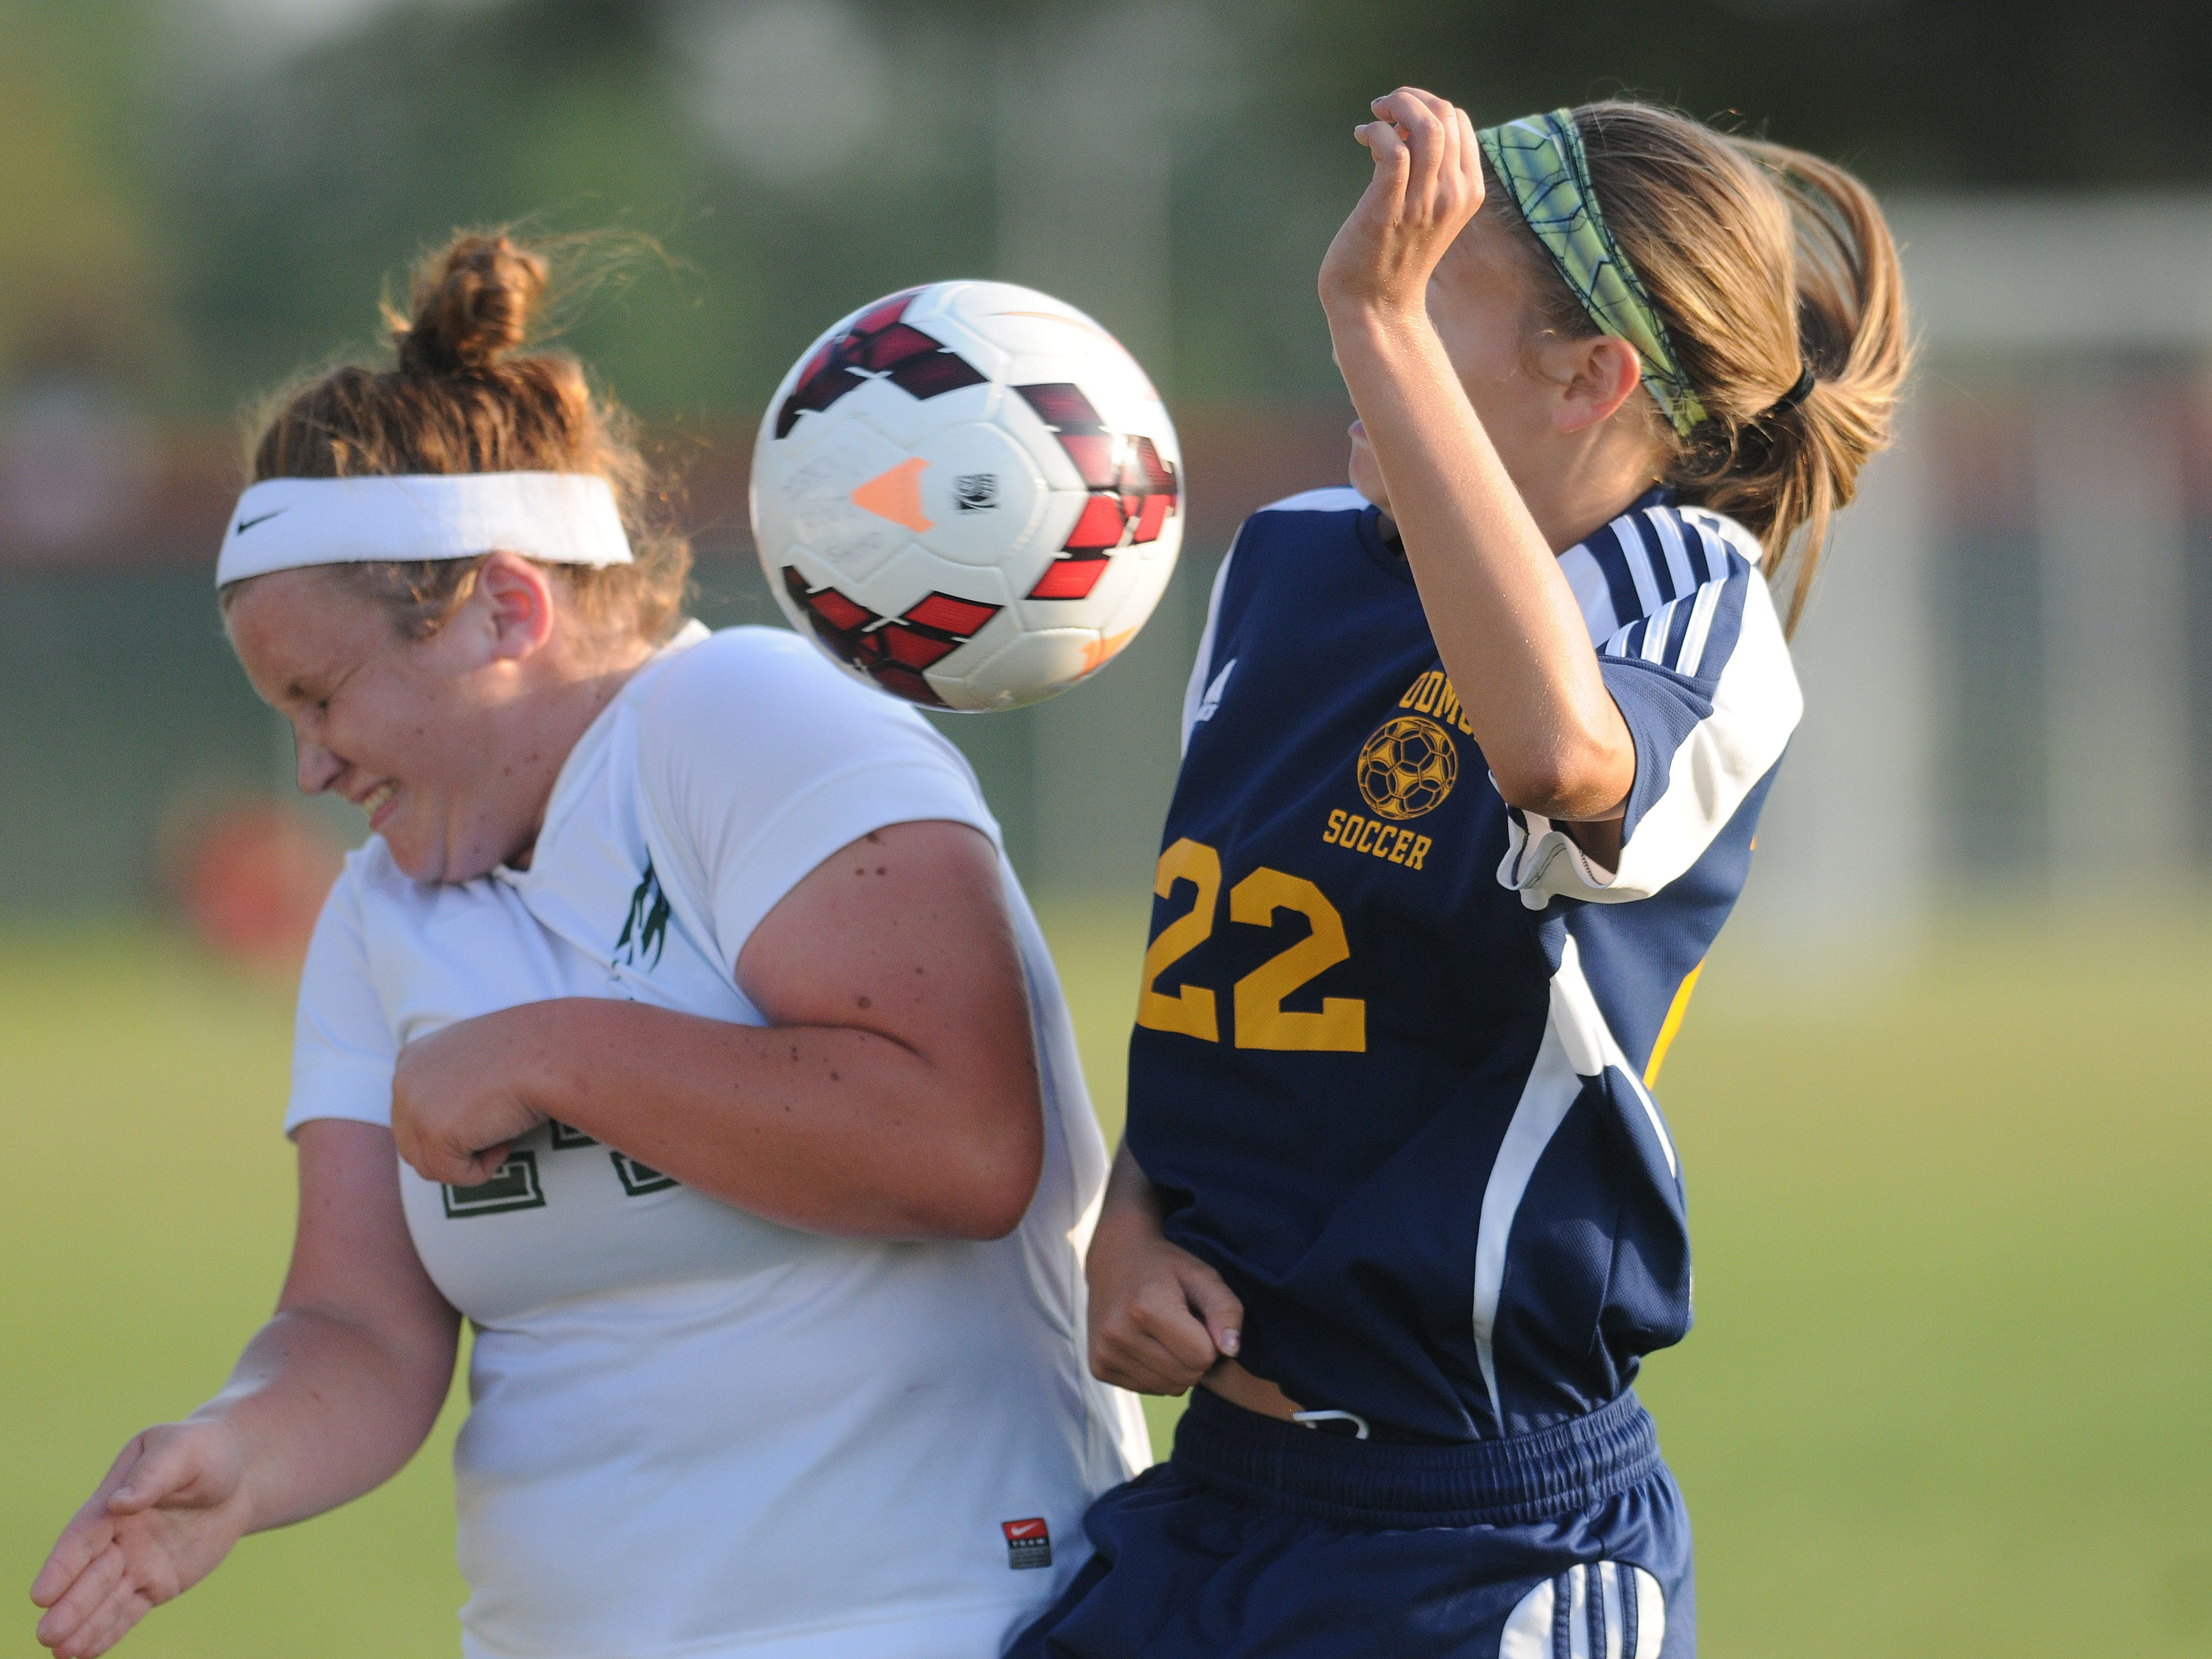 Oak Harbor's Ally Croy and Woodmore's Liz Koenig fight for the ball during a soccer game on Monday, Aug 18, 2014.